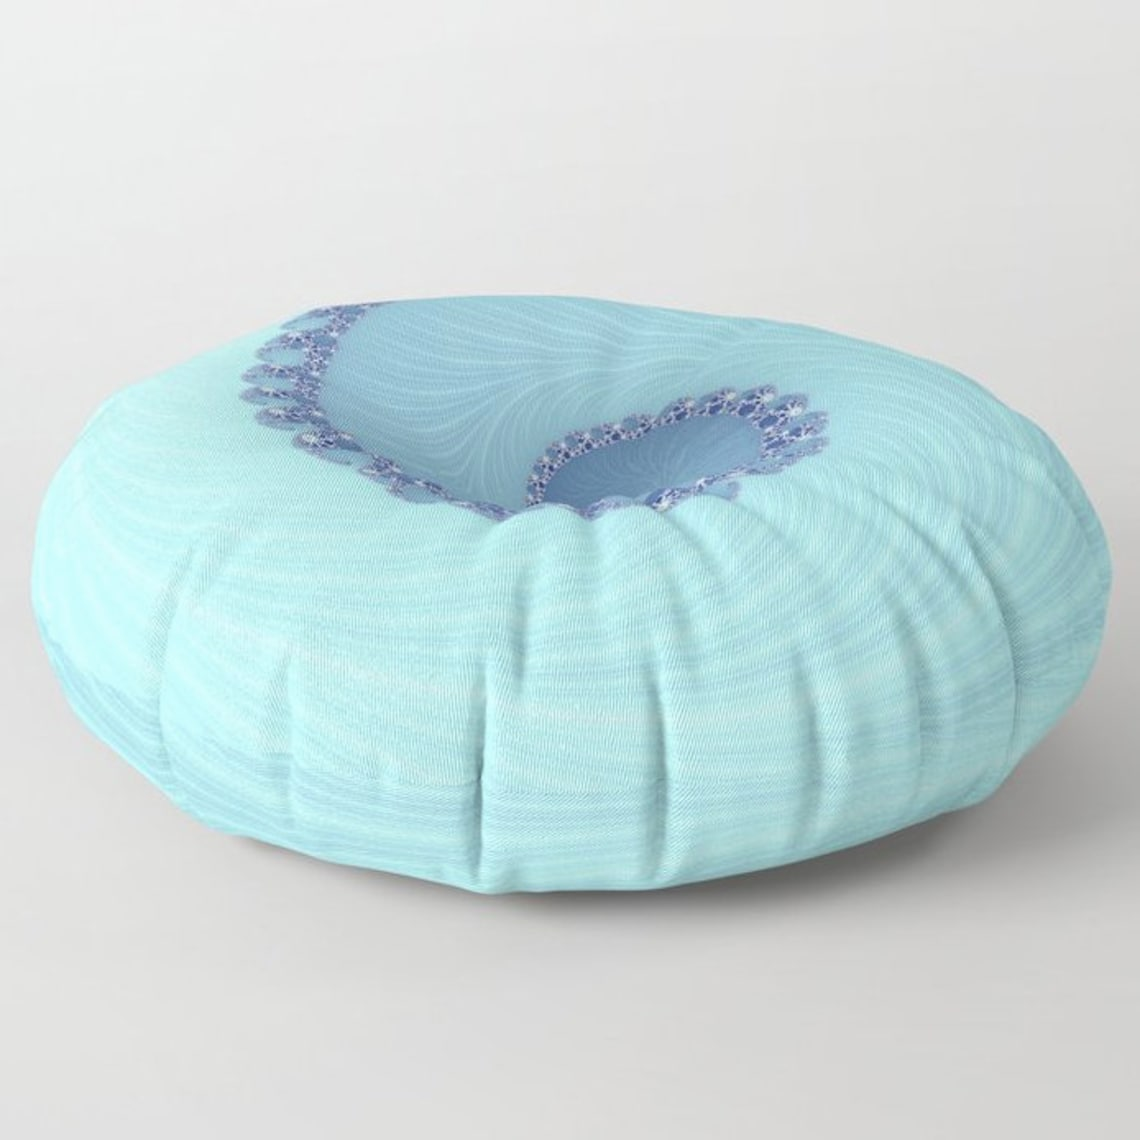 Baby Blue Floor Pillow | Infinity Spiral | Round or Square